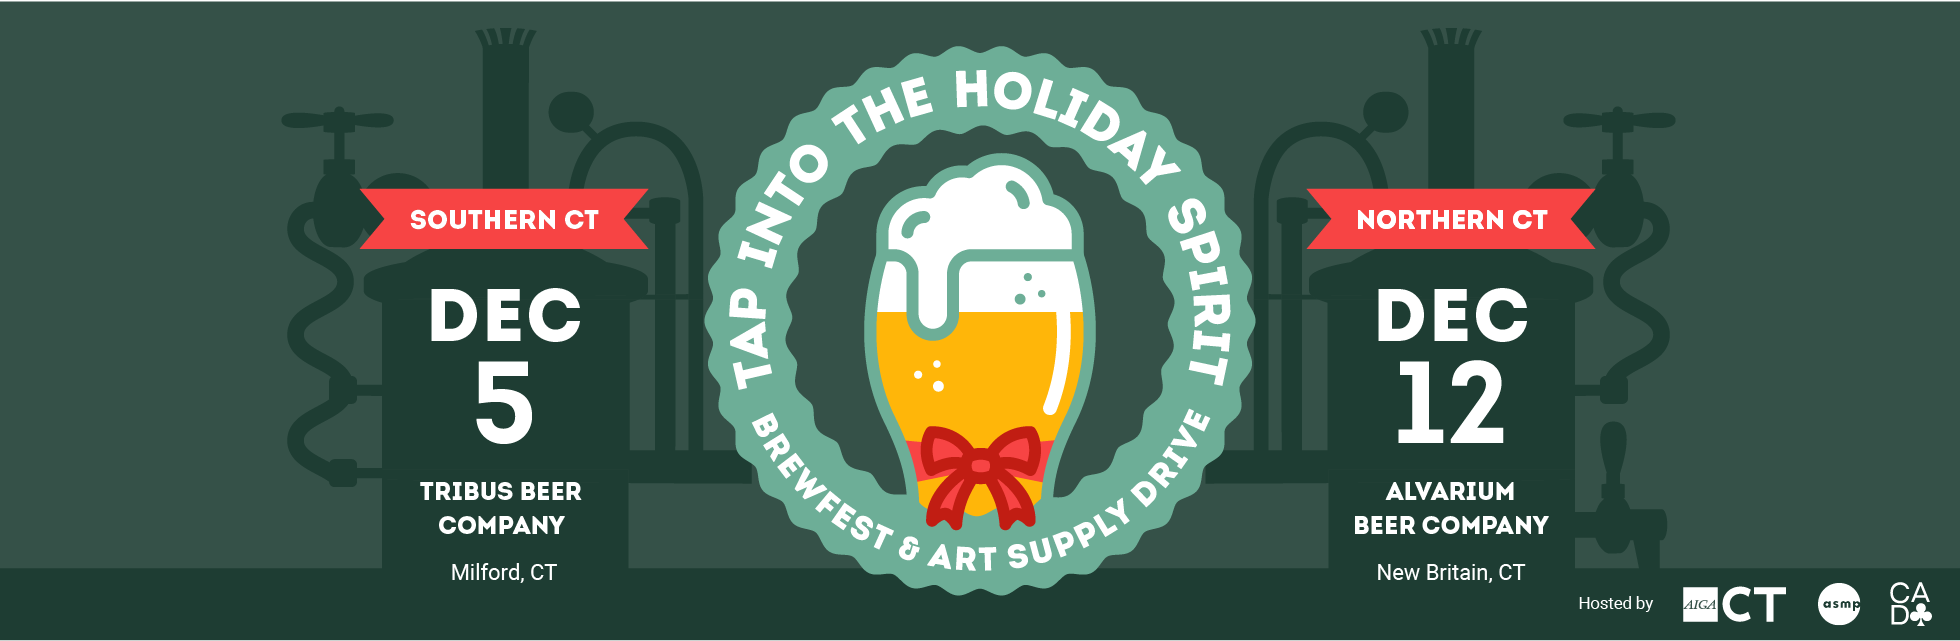 Holiday Party 2019, December 5 and 12